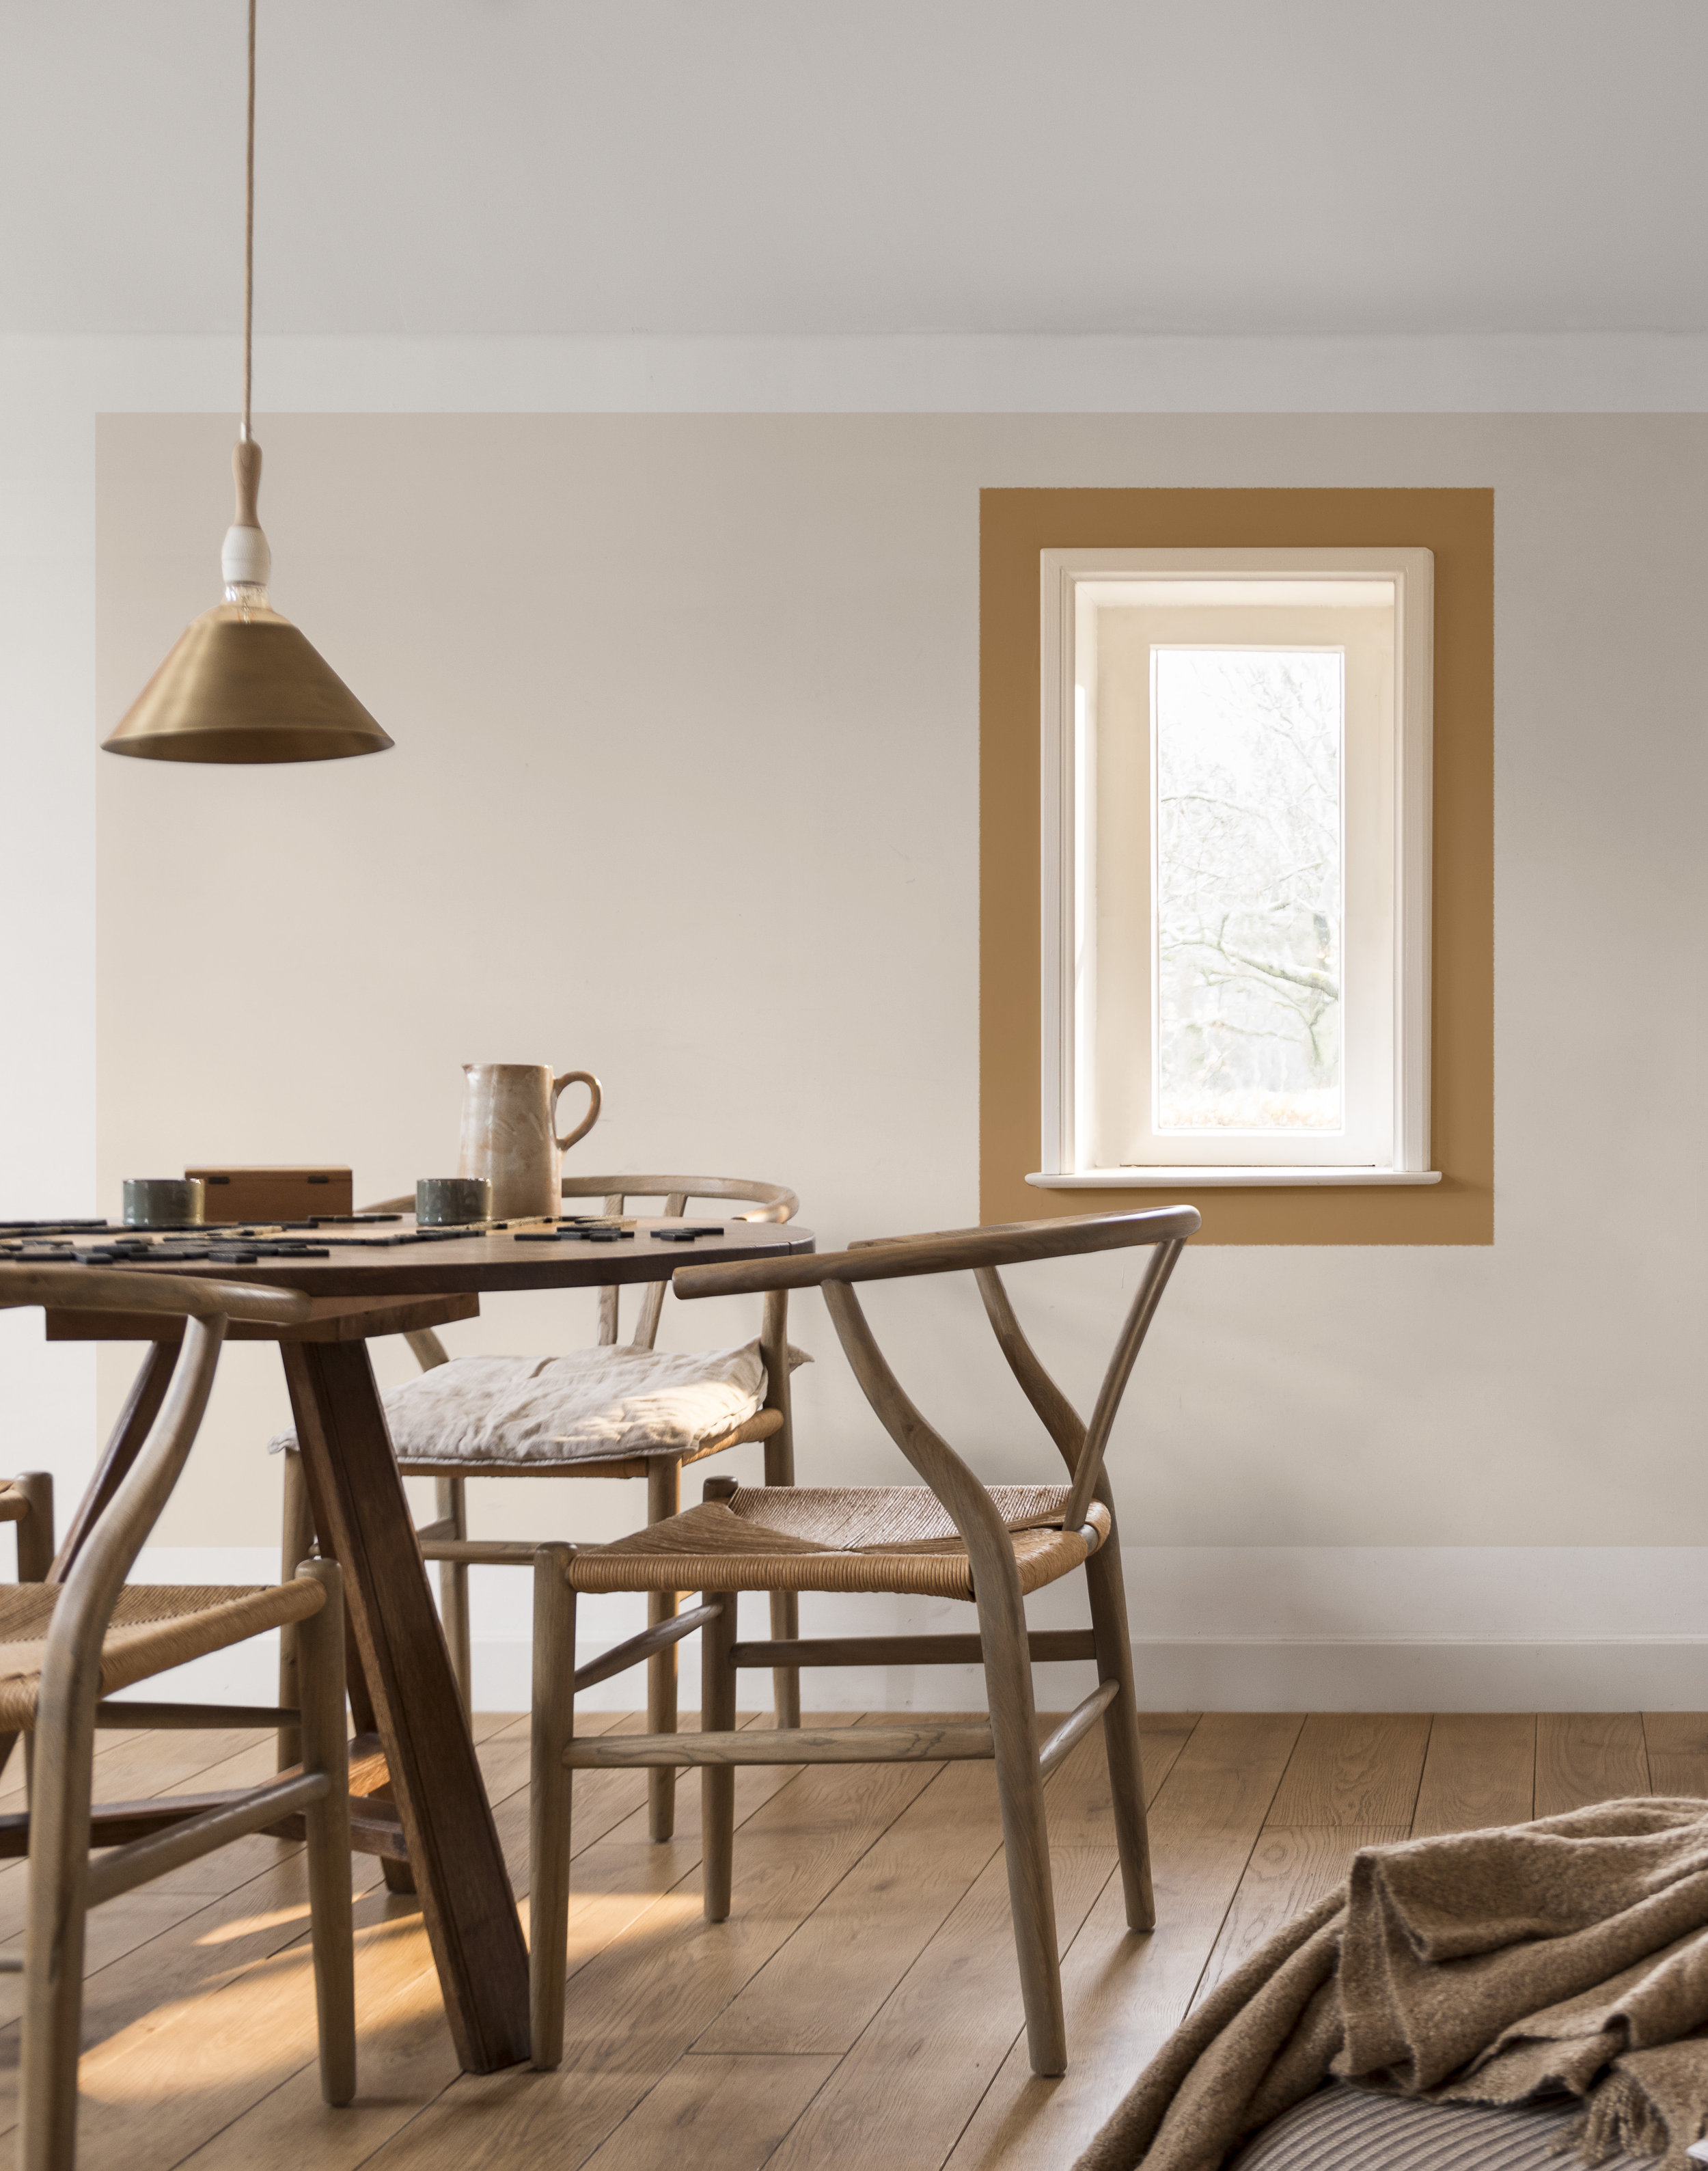 The New Neutrals - White walls have some serious competition in 2019 with the arrival of a new approach to neutral palettes. As colour confidence has grown over the last few years, the demand for pale tones and blush pink has evolved to create a whole new range of neutrals, from Dulux's warm and inviting 2019 Colour of the Year Spiced Honey, to Little Greene's new palette of sumptuous green shades, and the subtle grey tones of Benjamin Moore's Colour of the Year Metropolitan AF-690. For the adventurous, check out Farrow & Ball's new paint colour Sulking Room Pink – the perfect grown-up pink with an indulgent, earthy undertone.Image: Spiced Honey from Dulux, from £20.00 for 2.5L